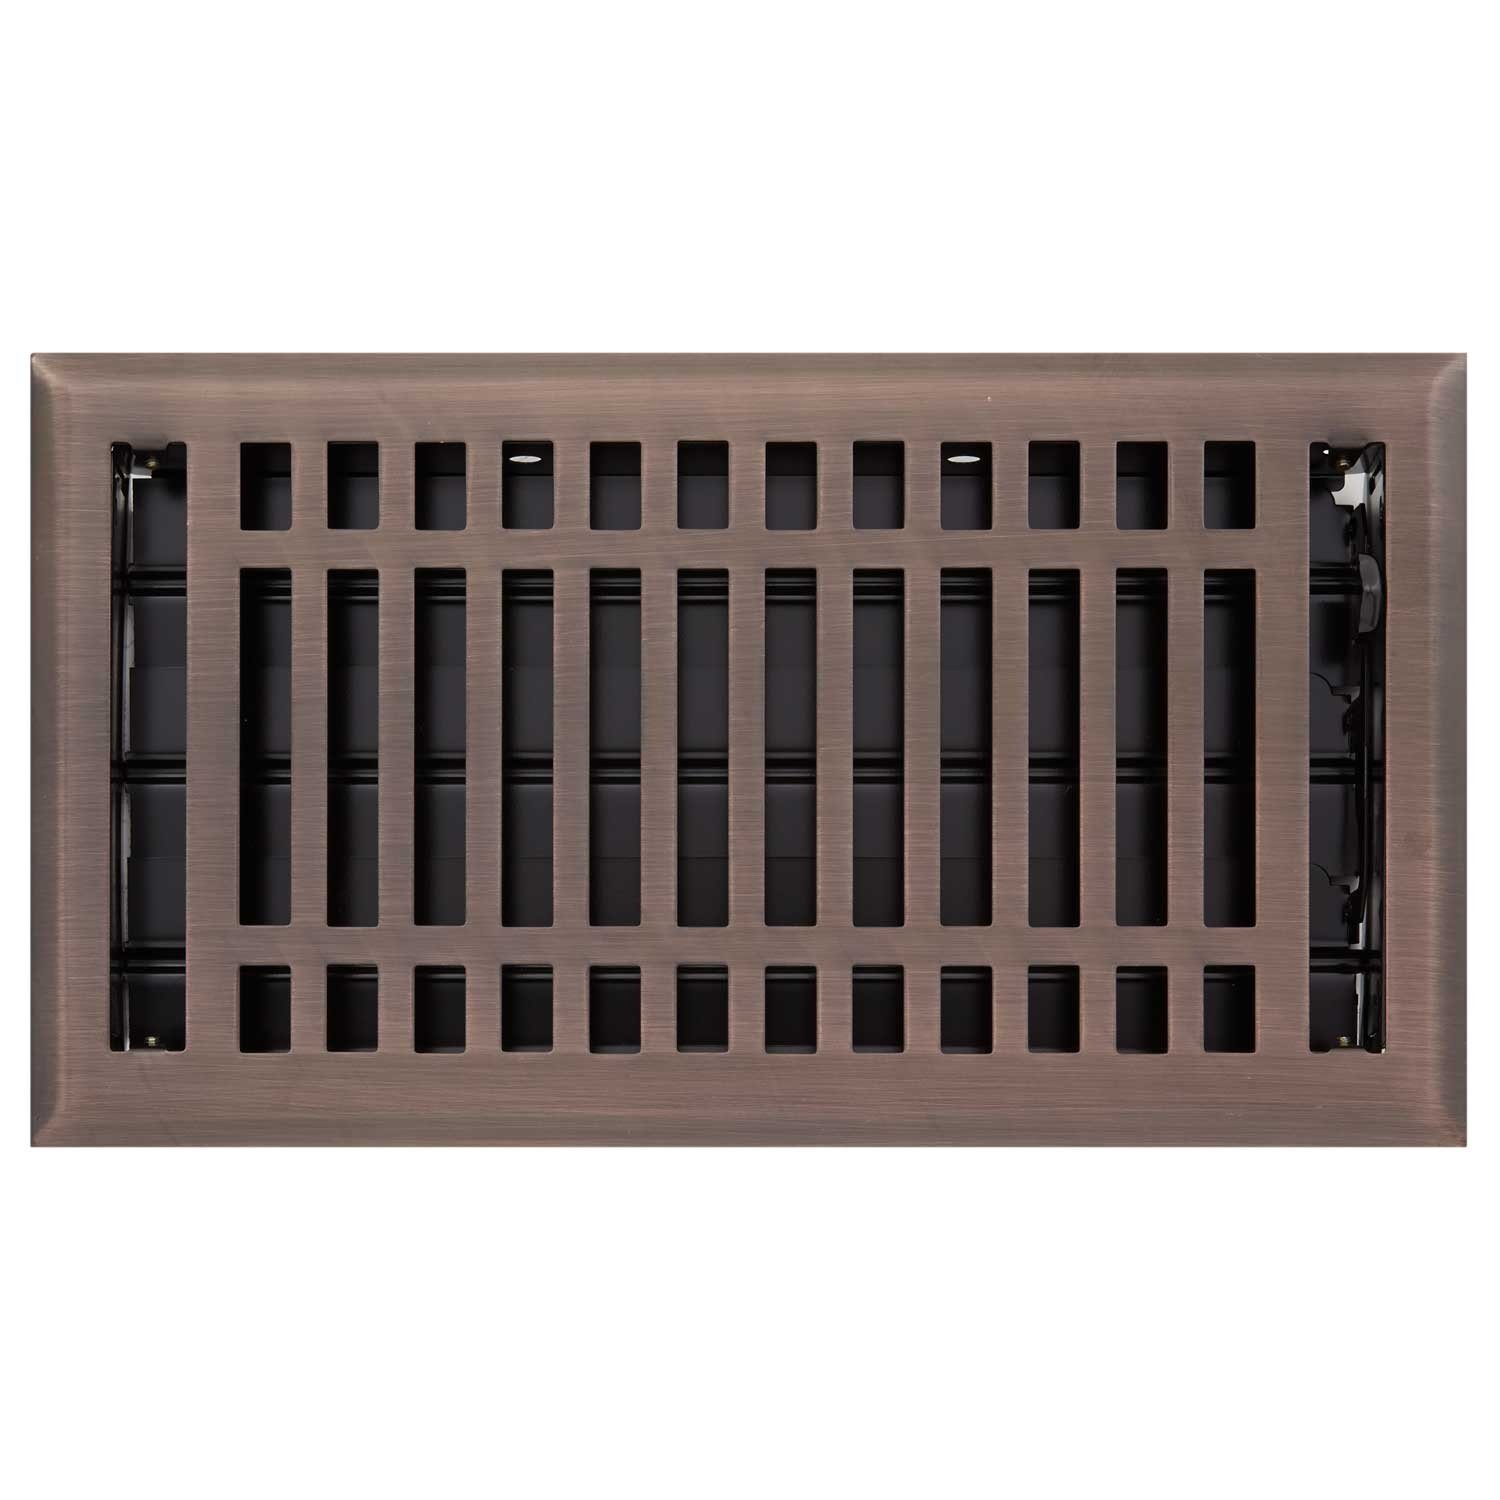 Naiture 6'' X 14'' Steel Louvered Floor Register with Damper or Lever Contemporary Style, Oil Rubbed Bronze Finish